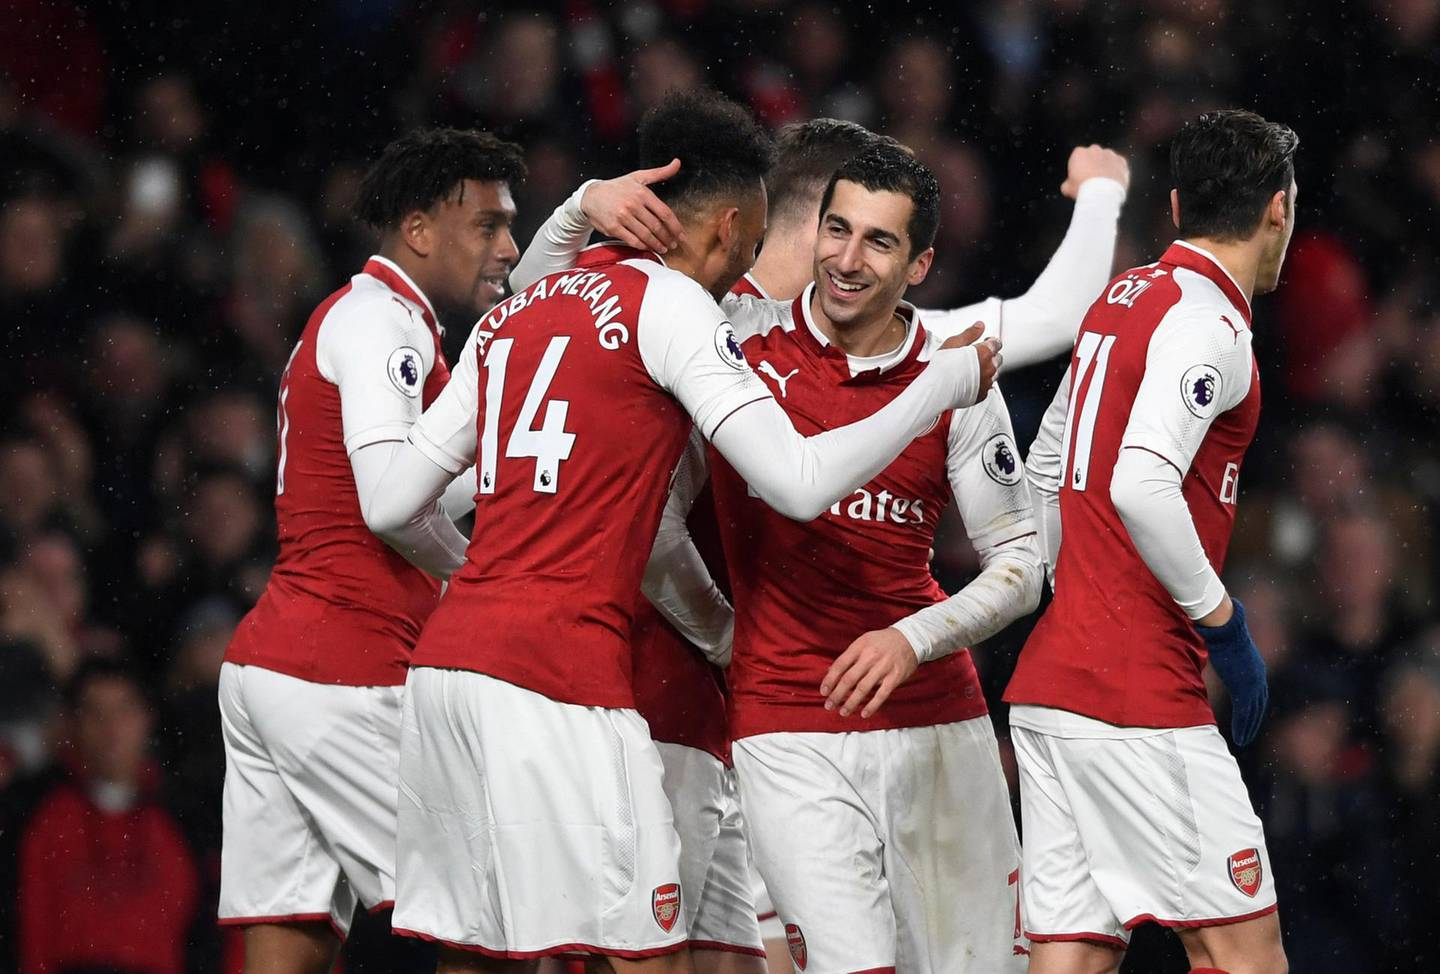 """Soccer Football - Premier League - Arsenal vs Everton - Emirates Stadium, London, Britain - February 3, 2018   Arsenal's Pierre-Emerick Aubameyang celebrates their first goal with Henrikh Mkhitaryan    Action Images via Reuters/Tony O'Brien    EDITORIAL USE ONLY. No use with unauthorized audio, video, data, fixture lists, club/league logos or """"live"""" services. Online in-match use limited to 75 images, no video emulation. No use in betting, games or single club/league/player publications.  Please contact your account representative for further details."""